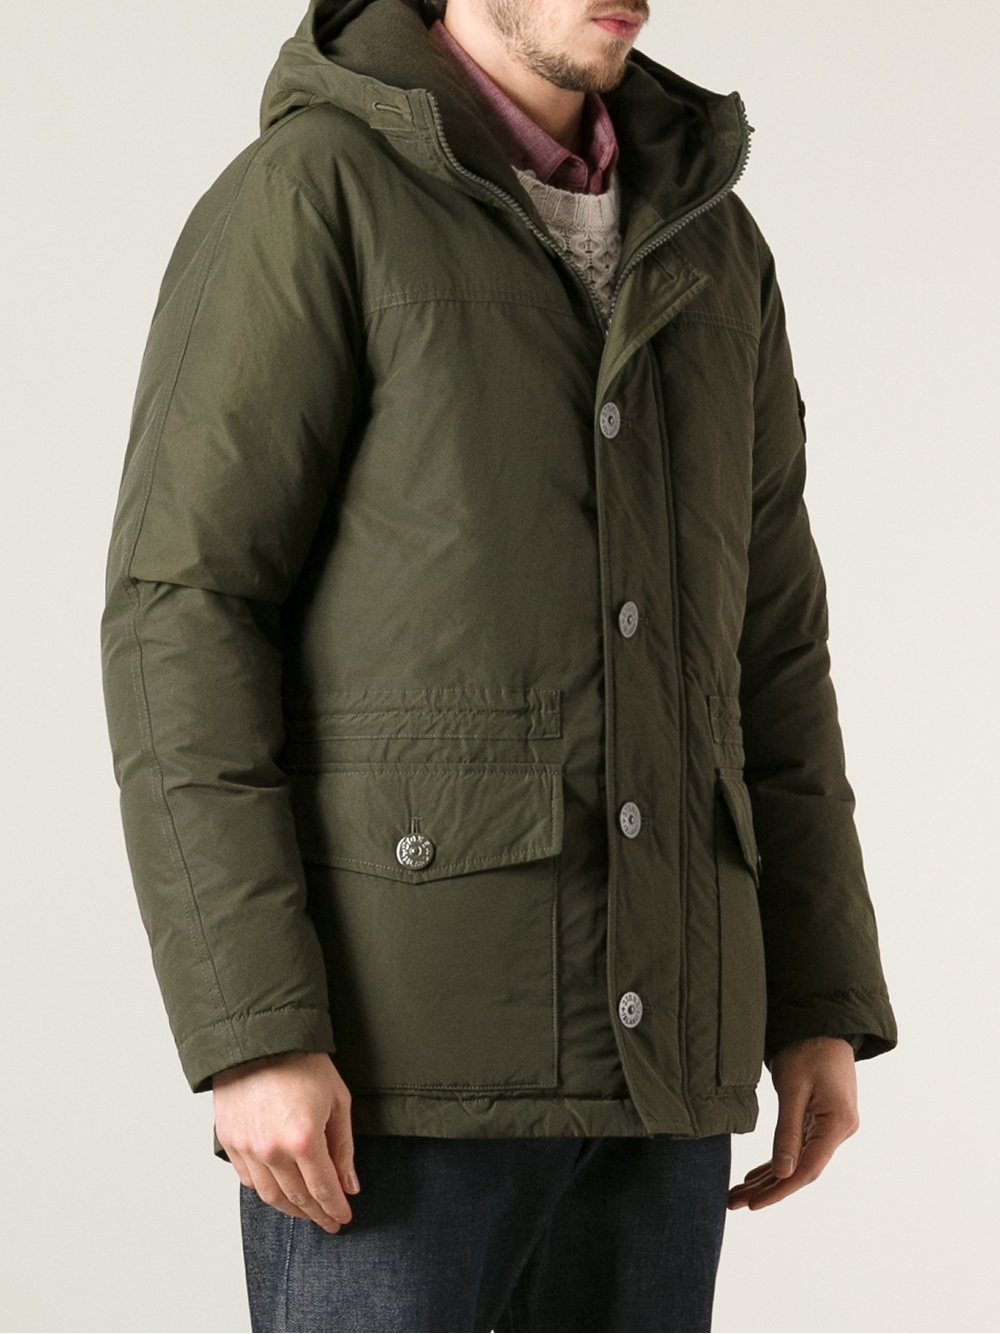 Stone Island Hooded Jacket in Green for Men - Lyst